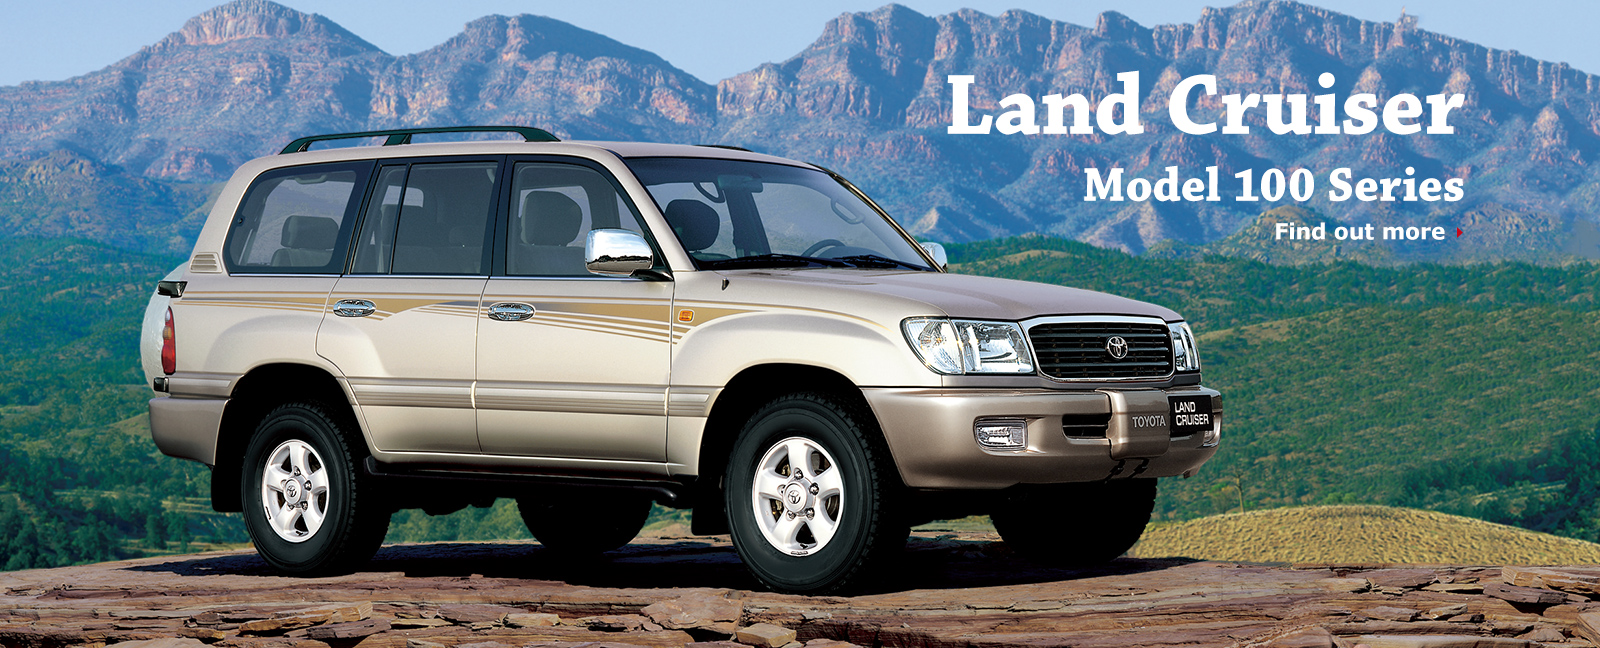 Toyota Global Site Land Cruiser